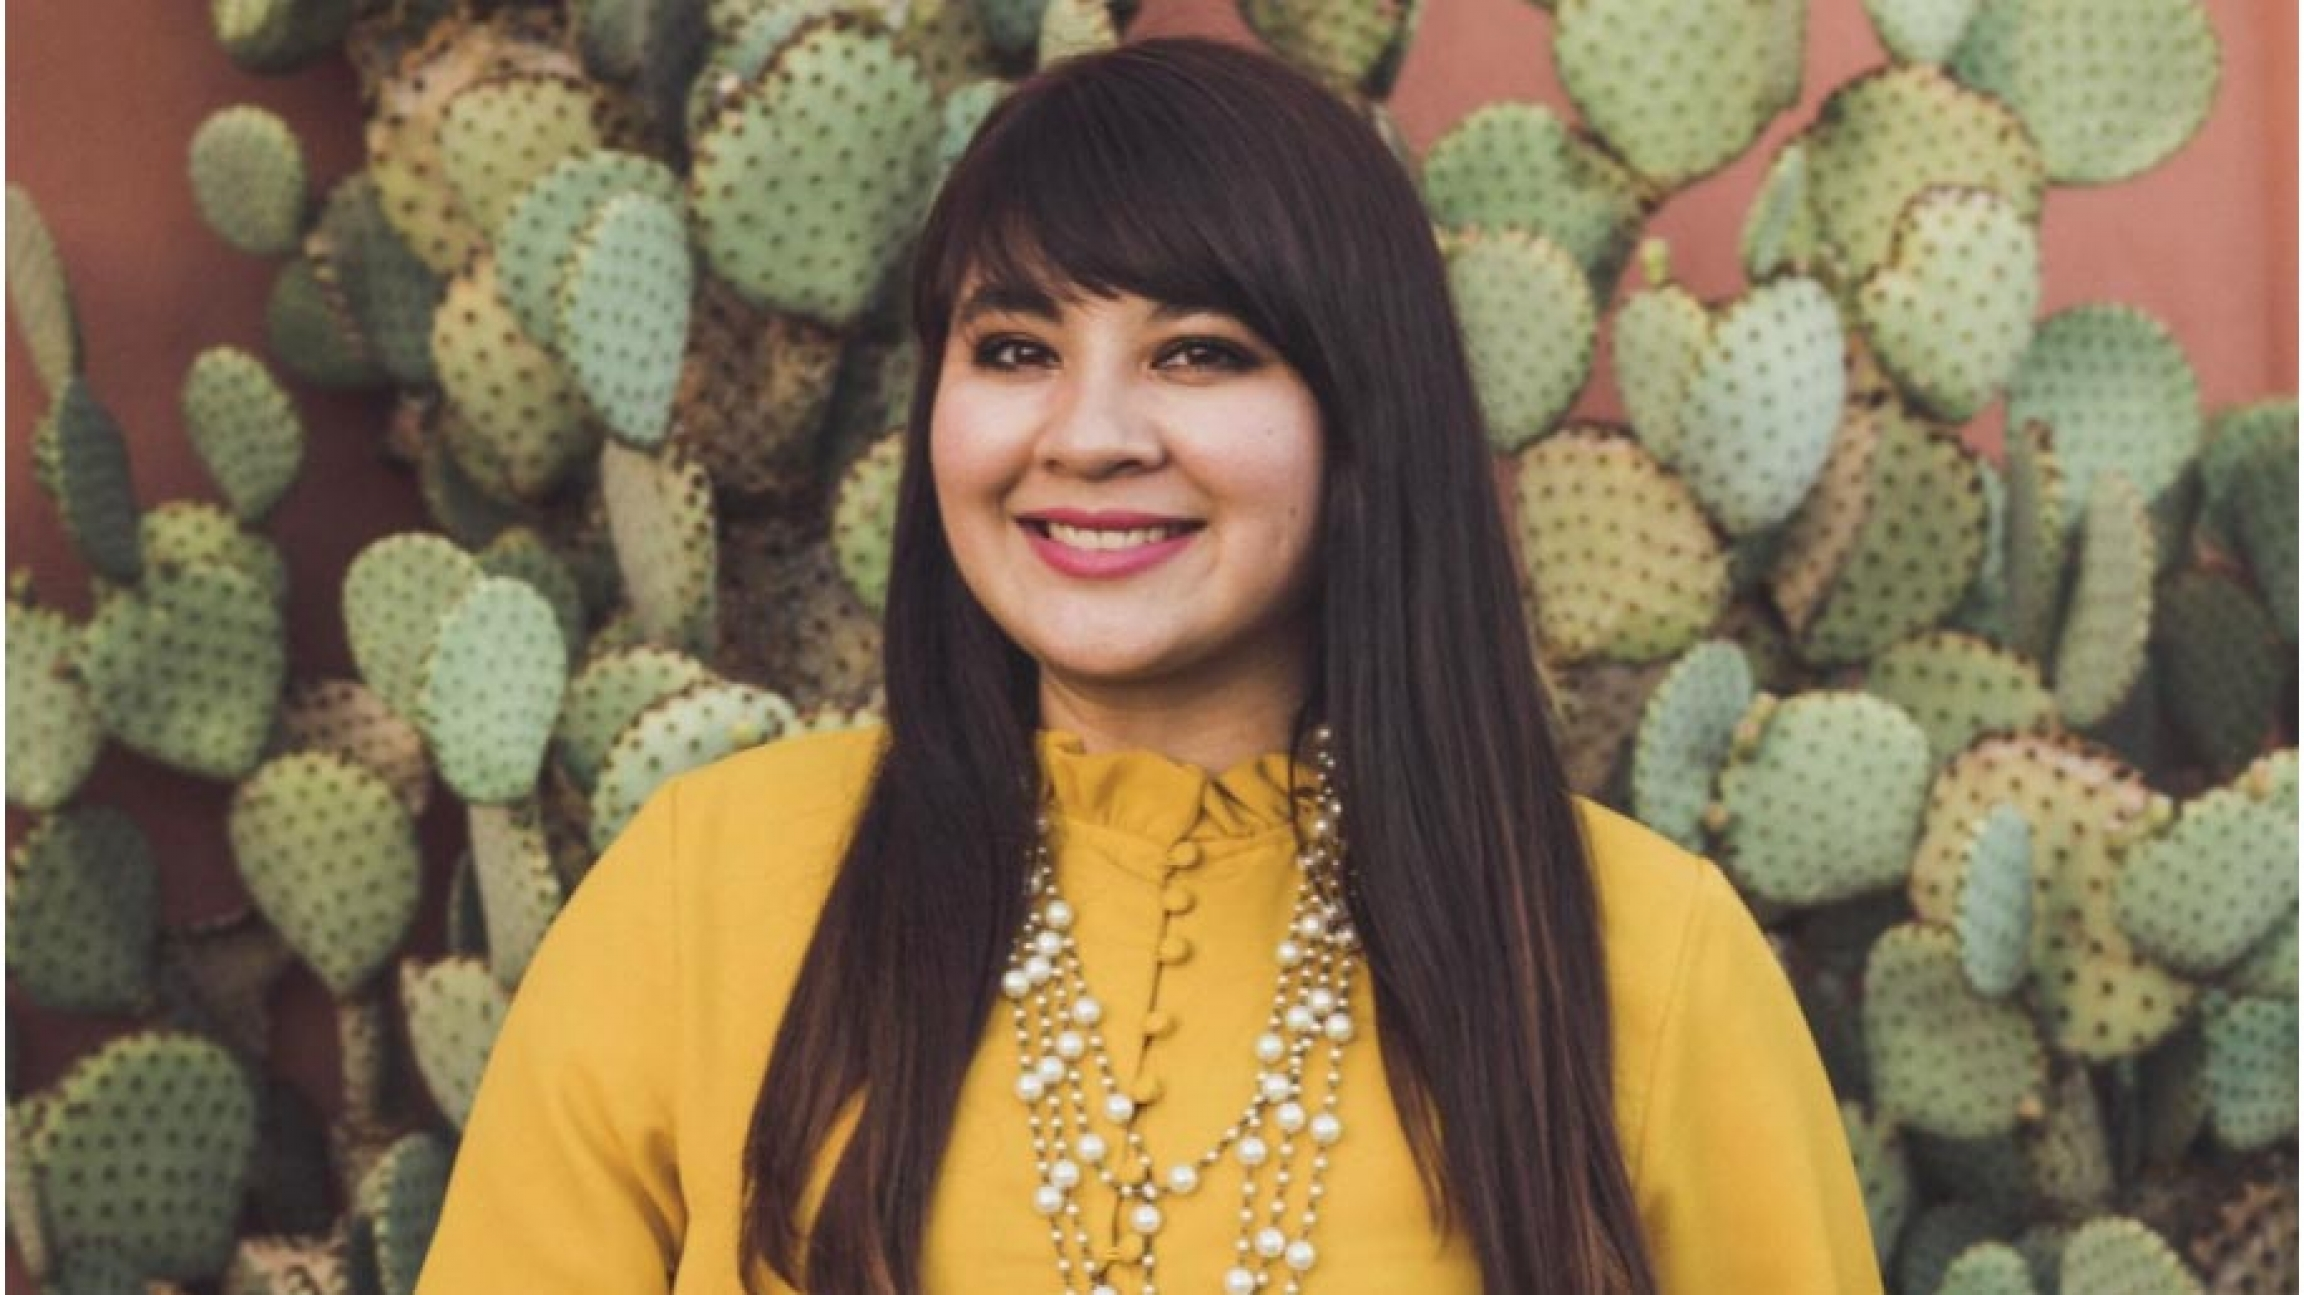 Reyna Montoya is an Arizona resident and the founder of Aliento, an immigrant aid organization.